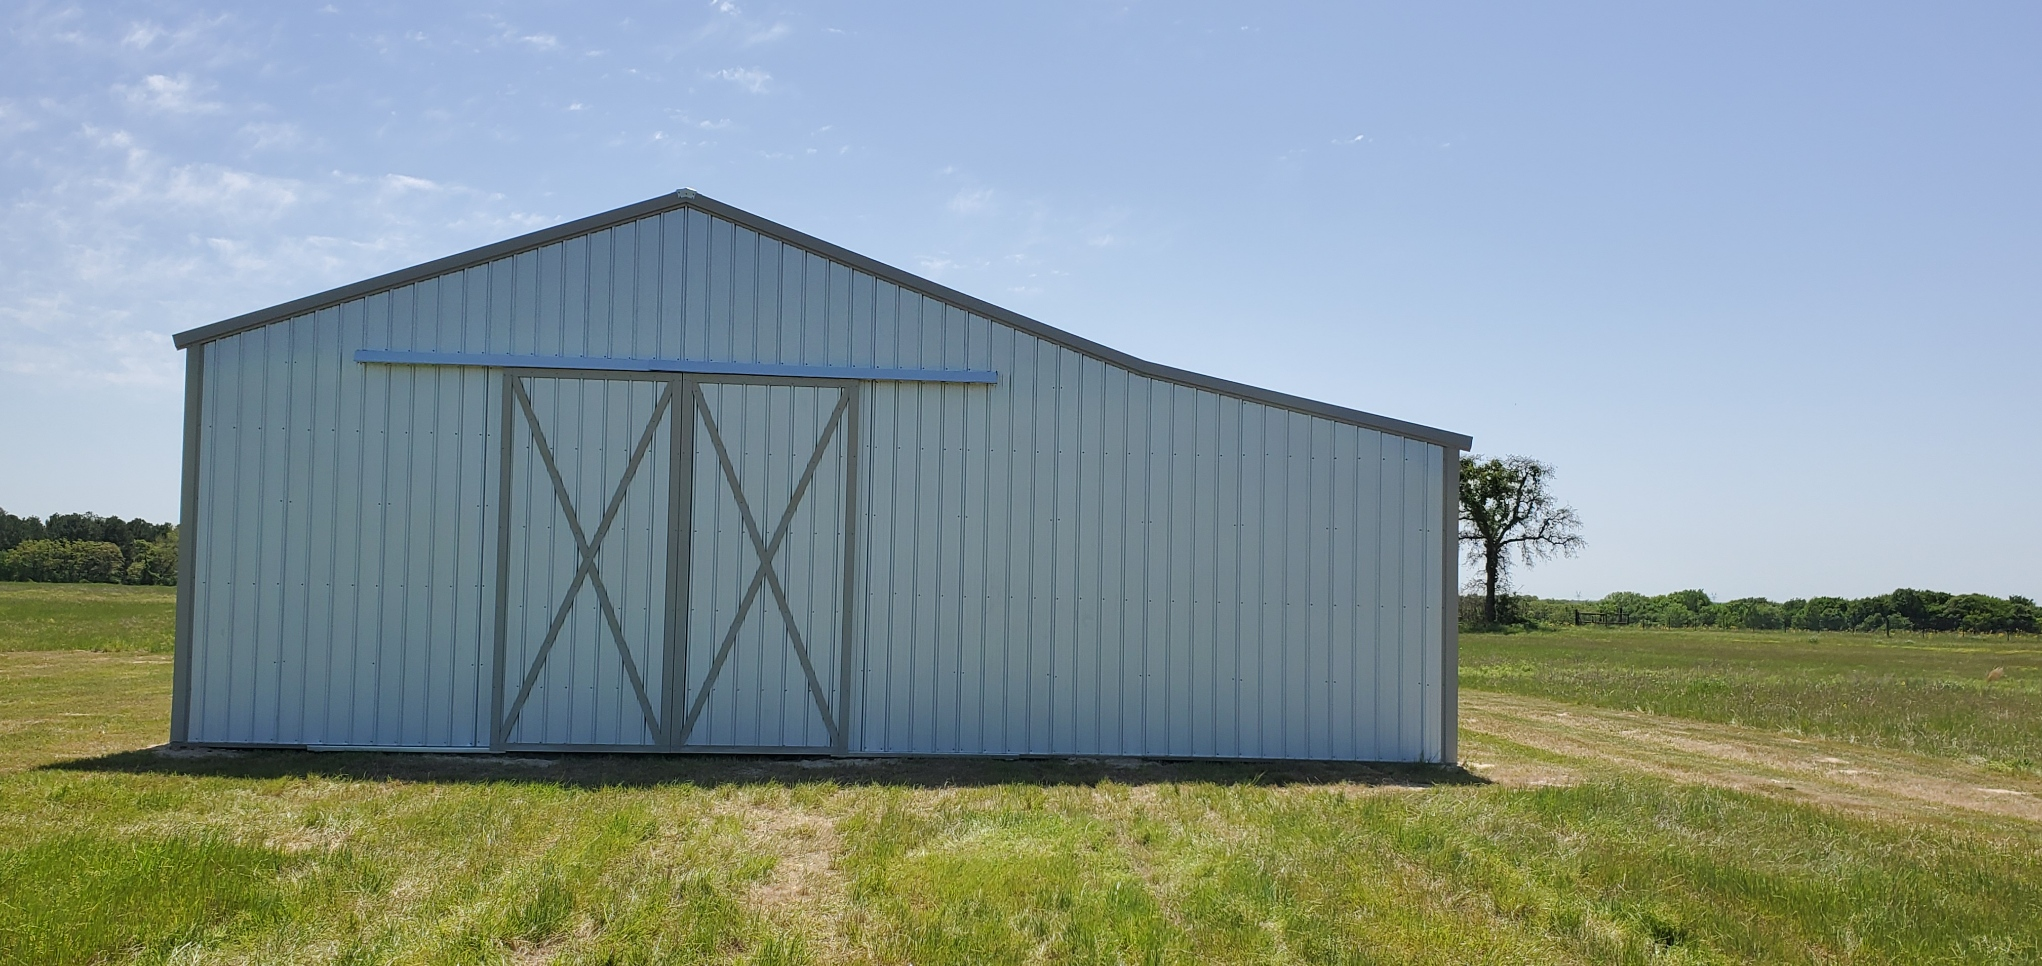 10 x 10 Enclosure in lean to w/8 x 8 Roll up pole barn